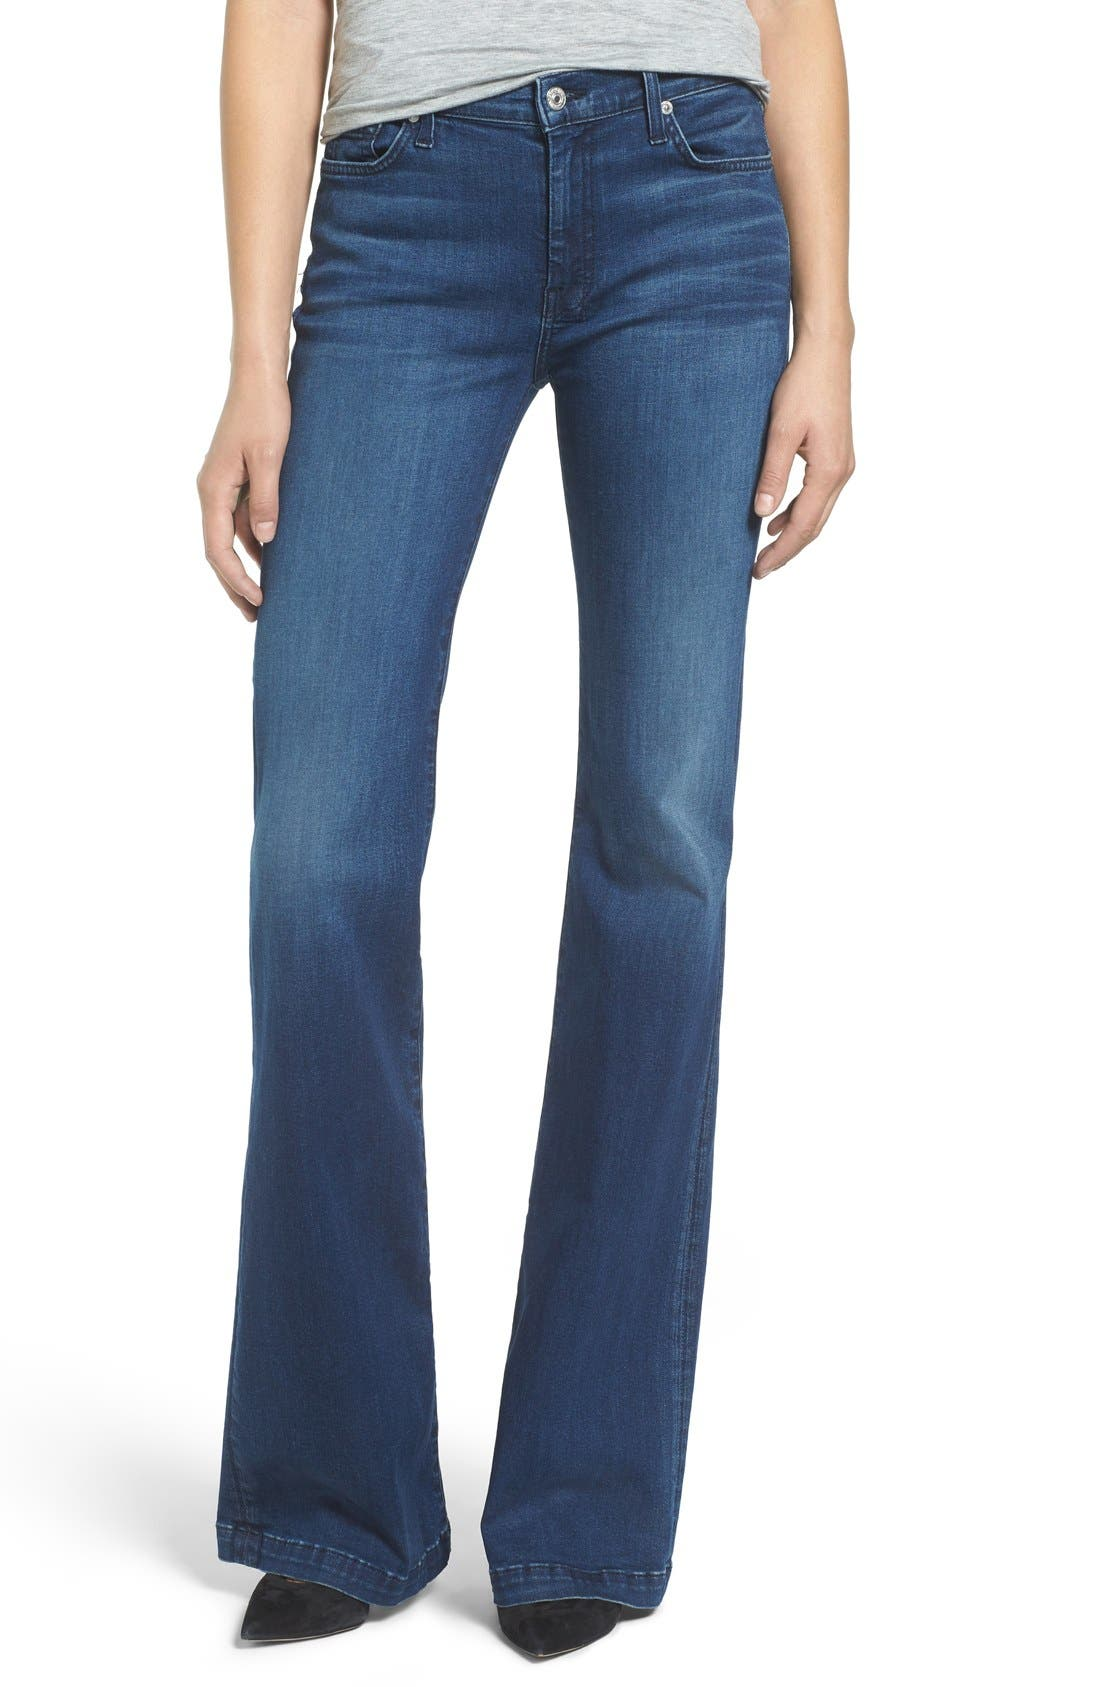 Main Image - 7 For All Mankind Tailorless Dojo Flare Jeans (Slim Illusion Luxe Luminous)